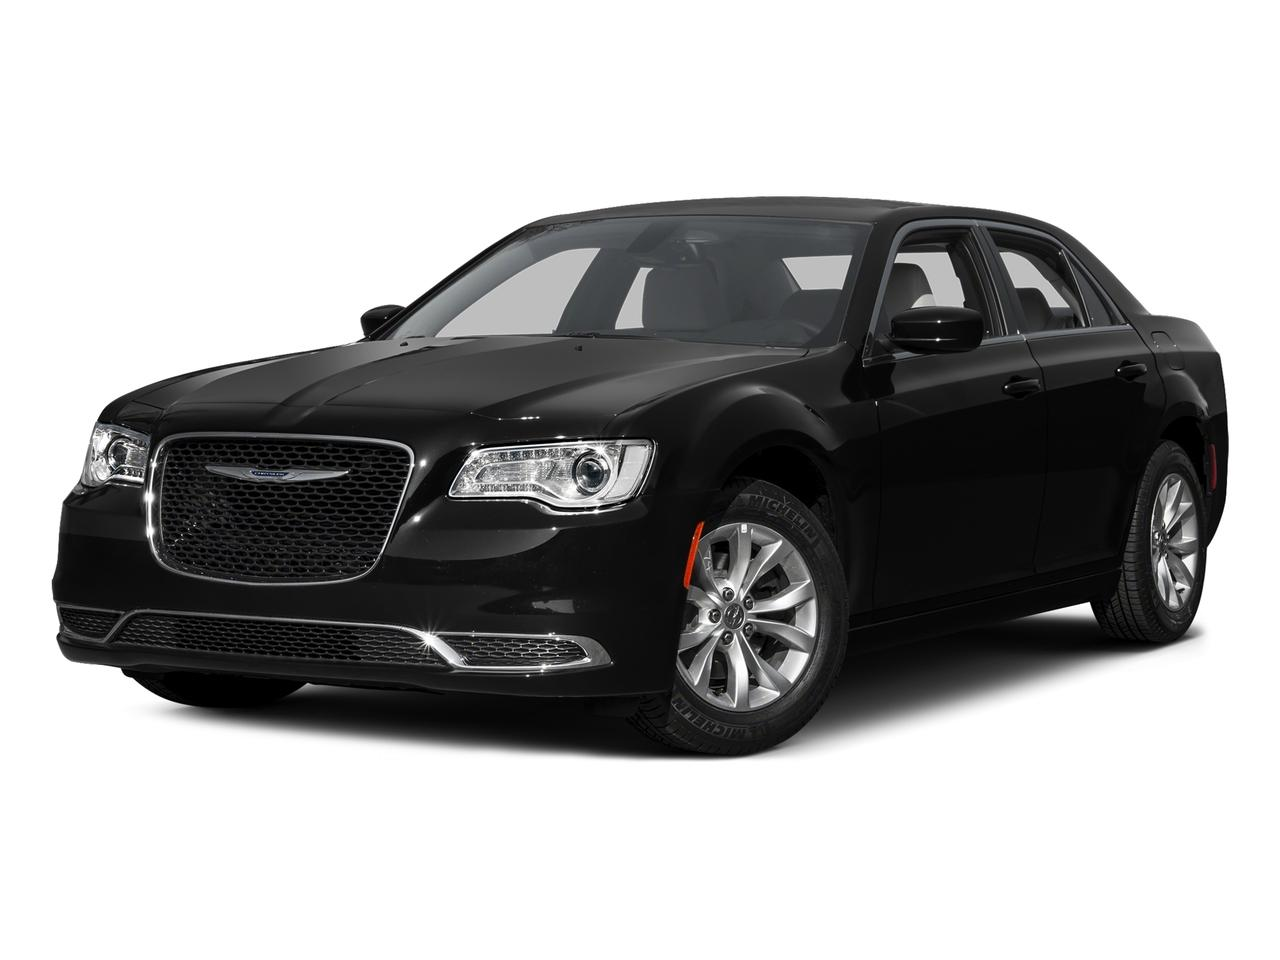 2015 Chrysler 300 Vehicle Photo in PORTLAND, OR 97225-3518